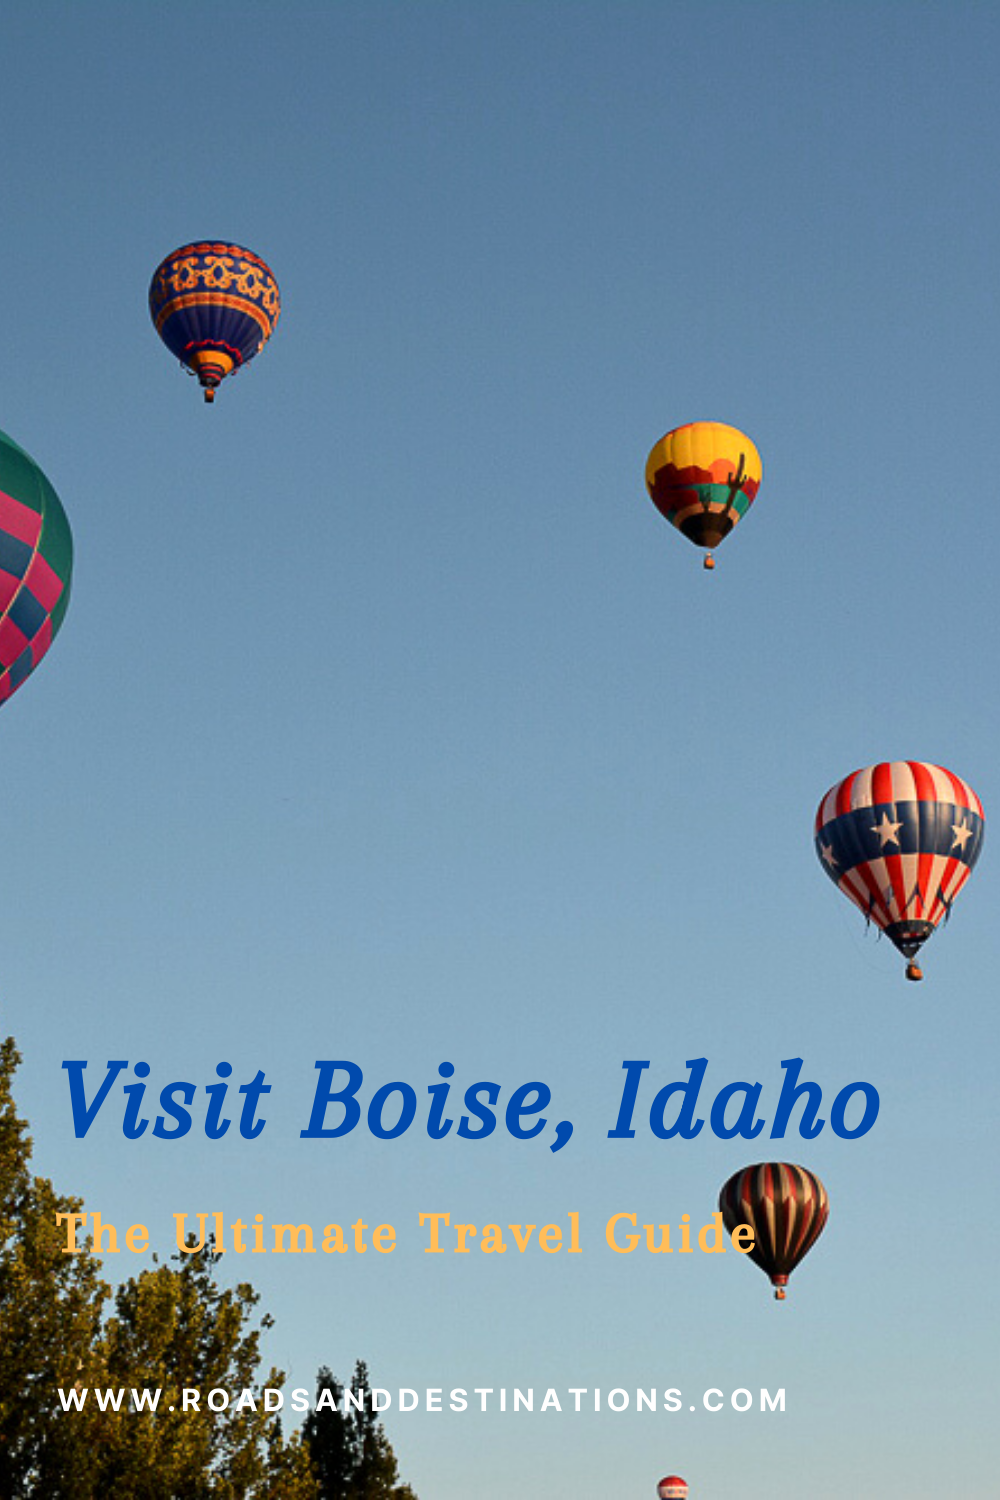 Visit Boise, Idaho - The Ultimate Travel Guide - Roads and Destinations, roadsanddestinations.com